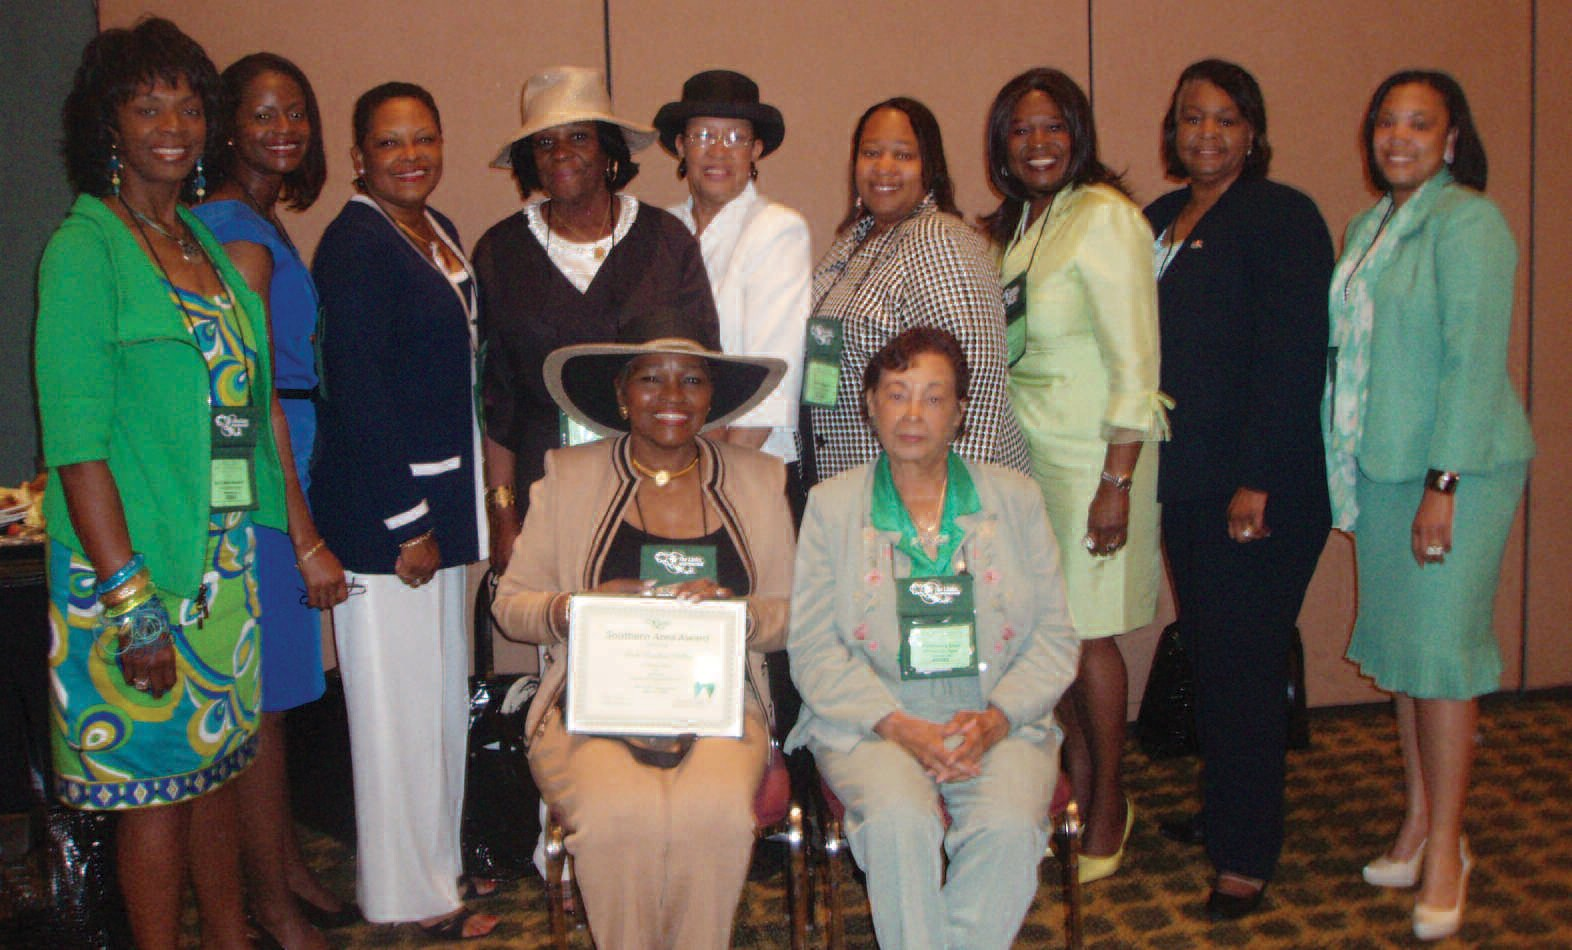 Members of the Savannah Chapter of The Links, Inc. are pictured with Rosalind Hollis (seated, left) who received her 25-year certificate during the Southern Area Conference.